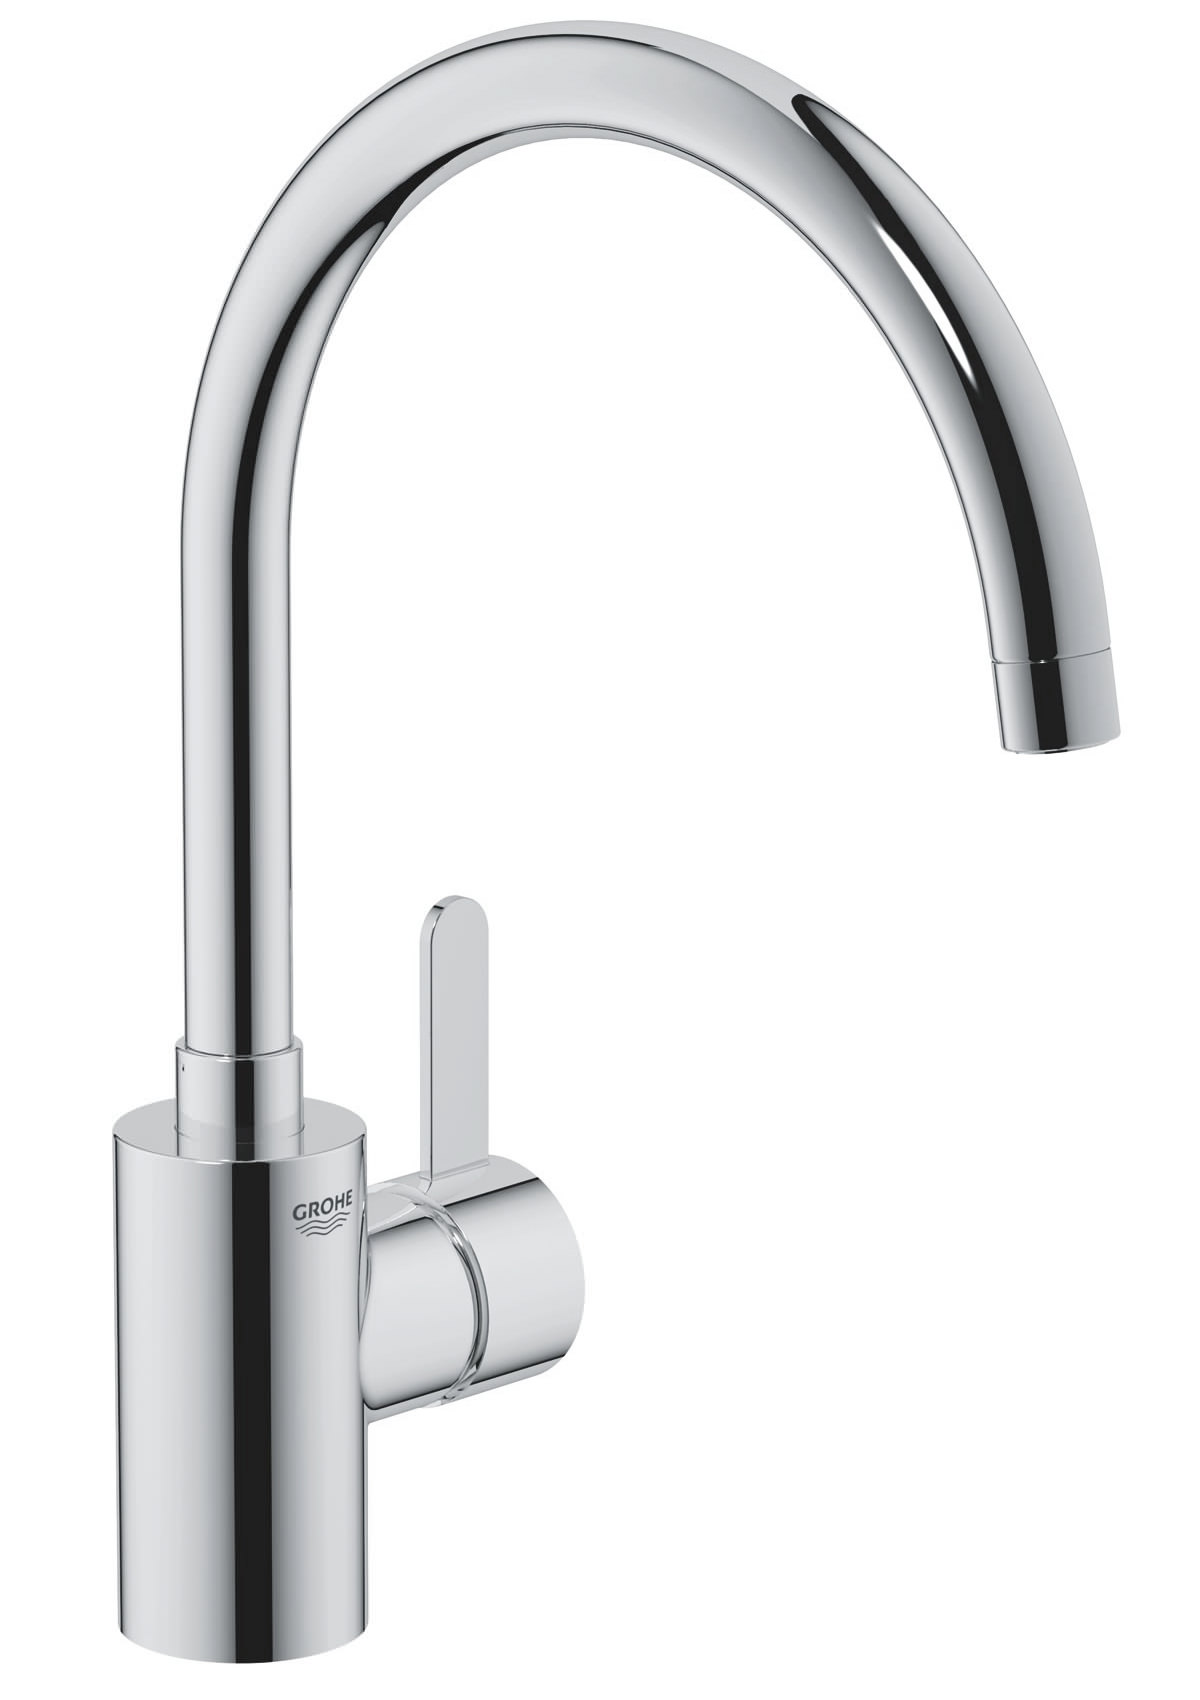 grohe eurosmart cosmopolitan high spout sink mixer tap 32843000. Black Bedroom Furniture Sets. Home Design Ideas